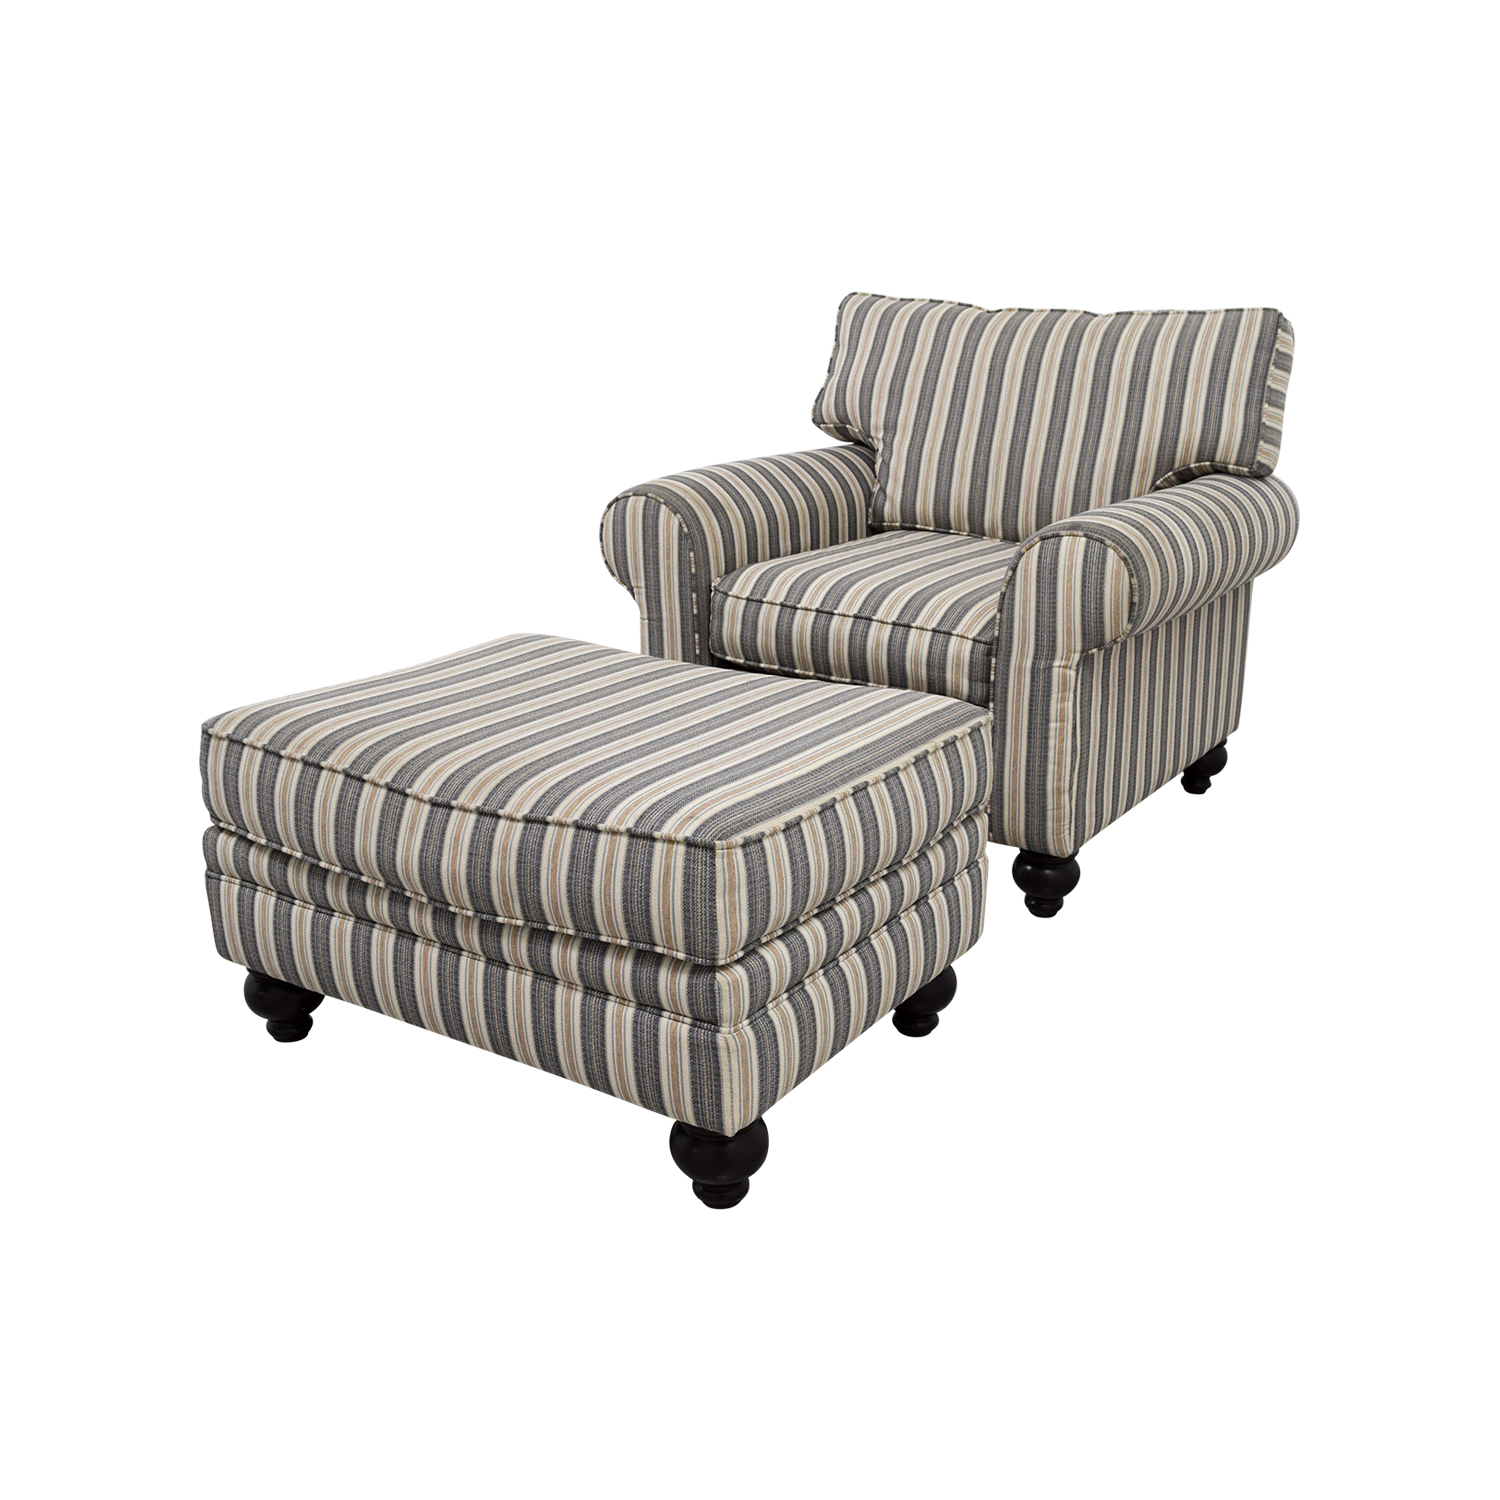 Chairs With Ottomans 90 Off Bob 39s Furniture Bob 39s Furniture Sofa Chair With